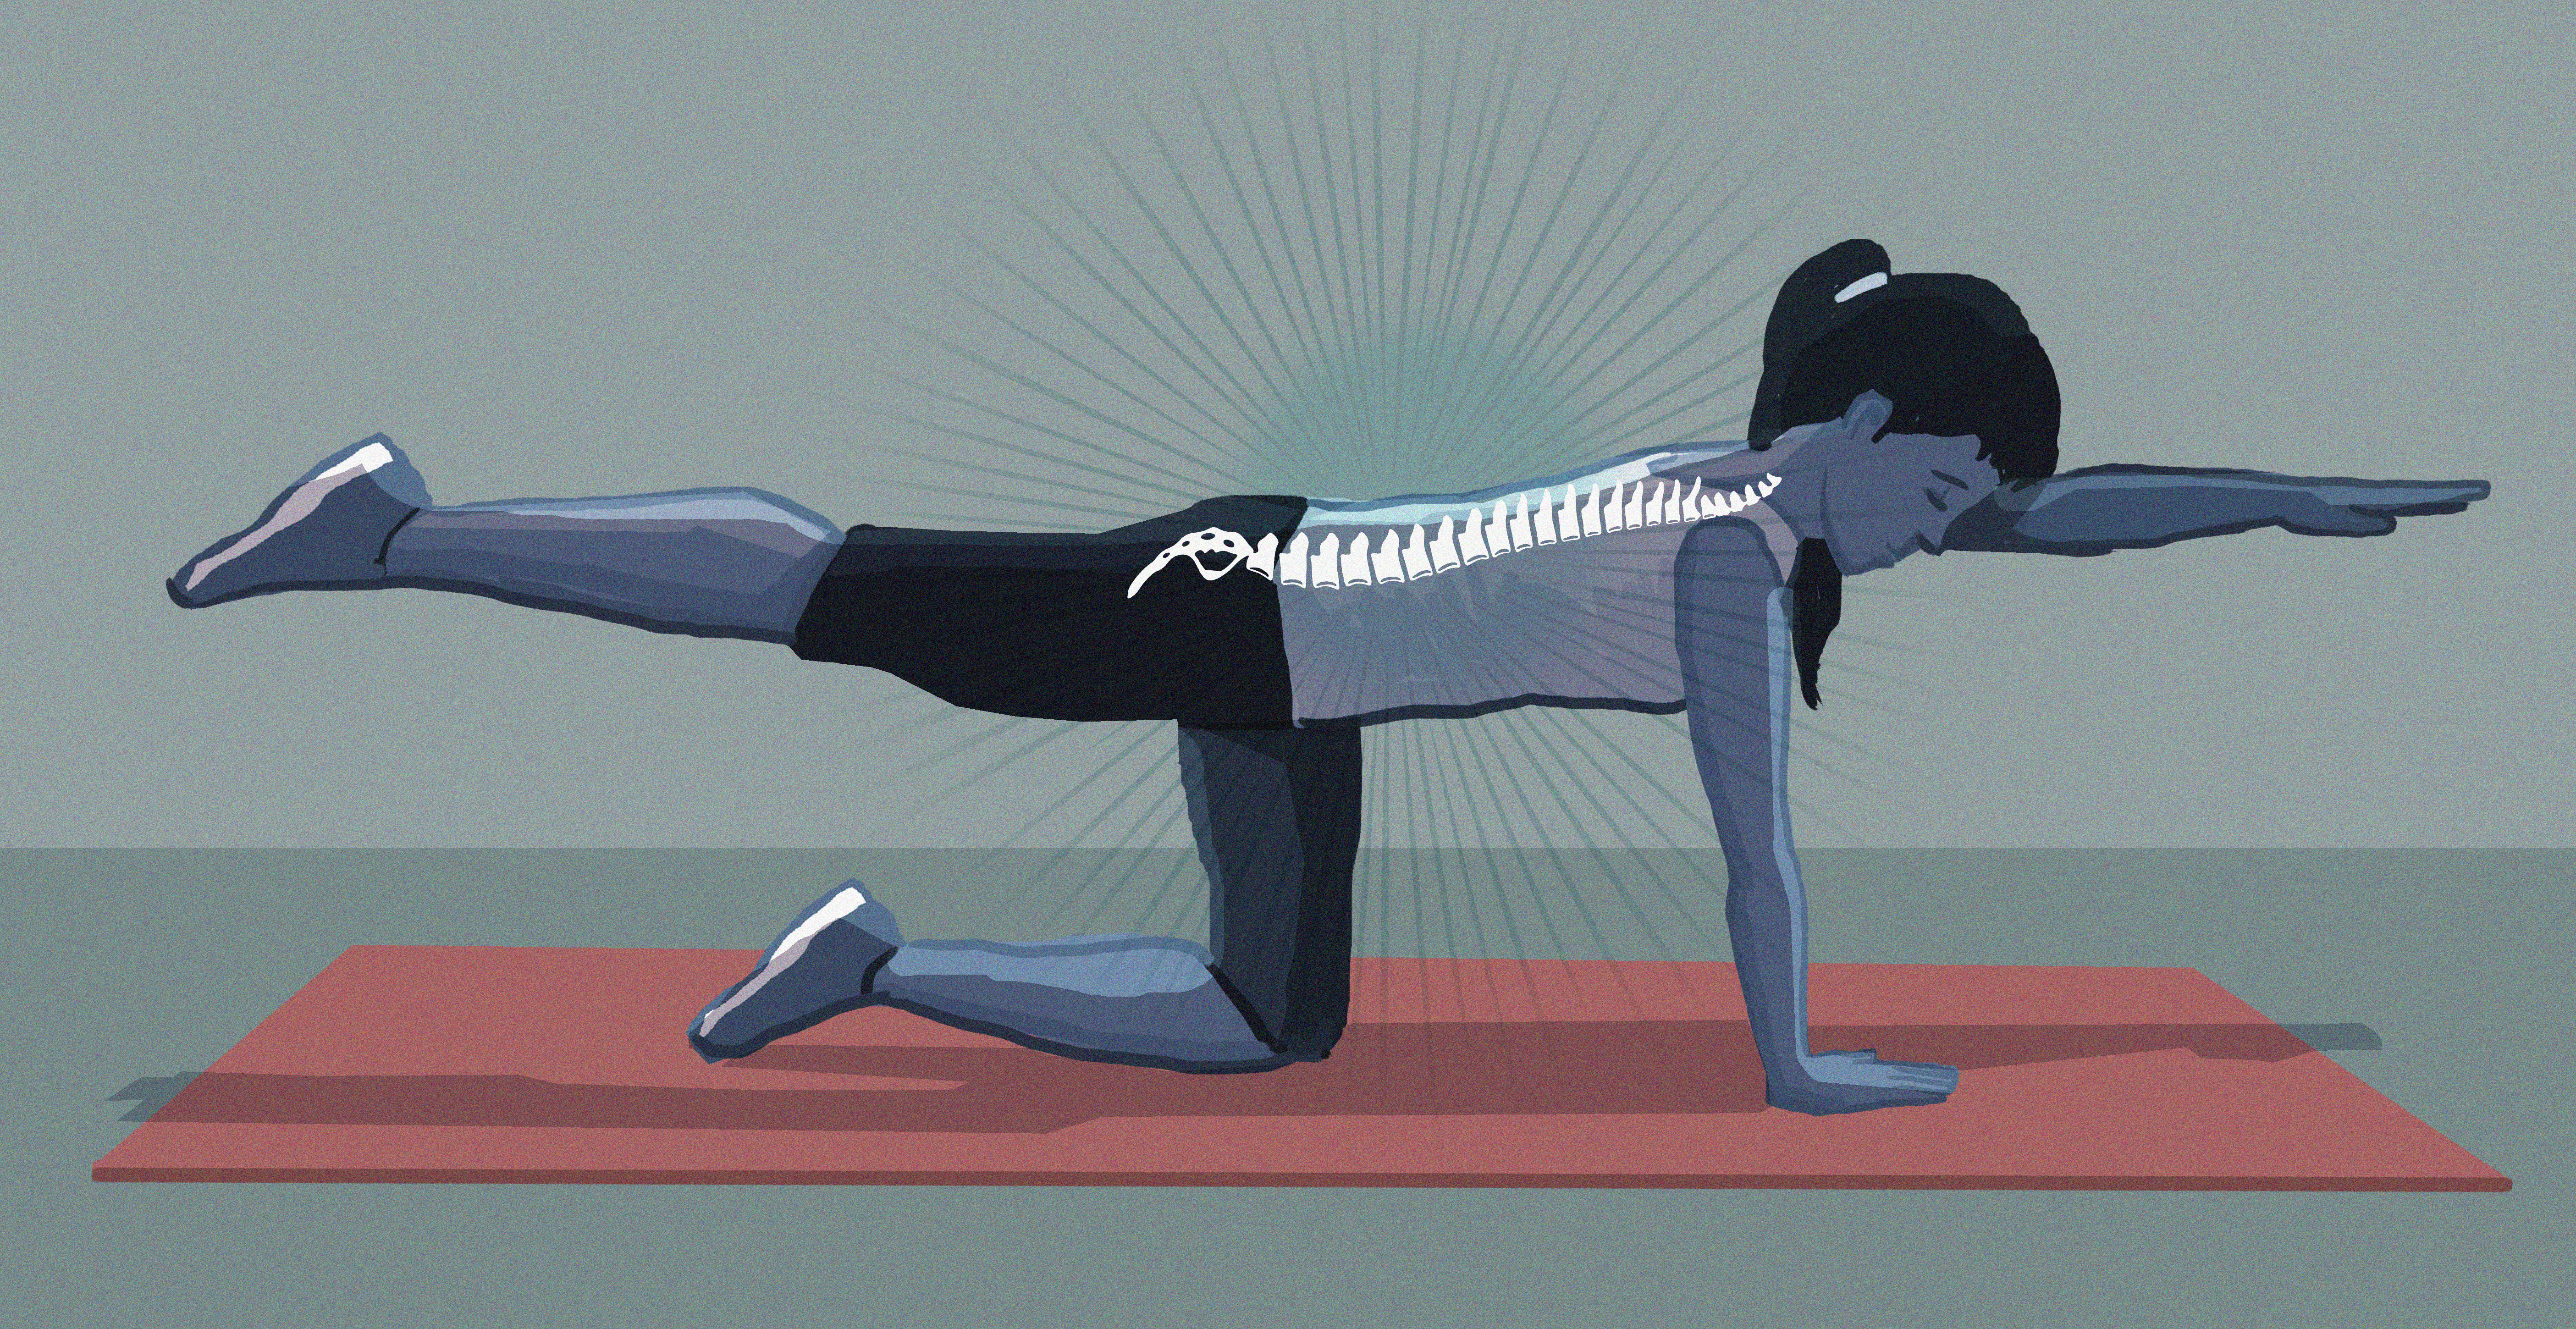 A comprehensive guide to the new science of treating lower back pain - Vox